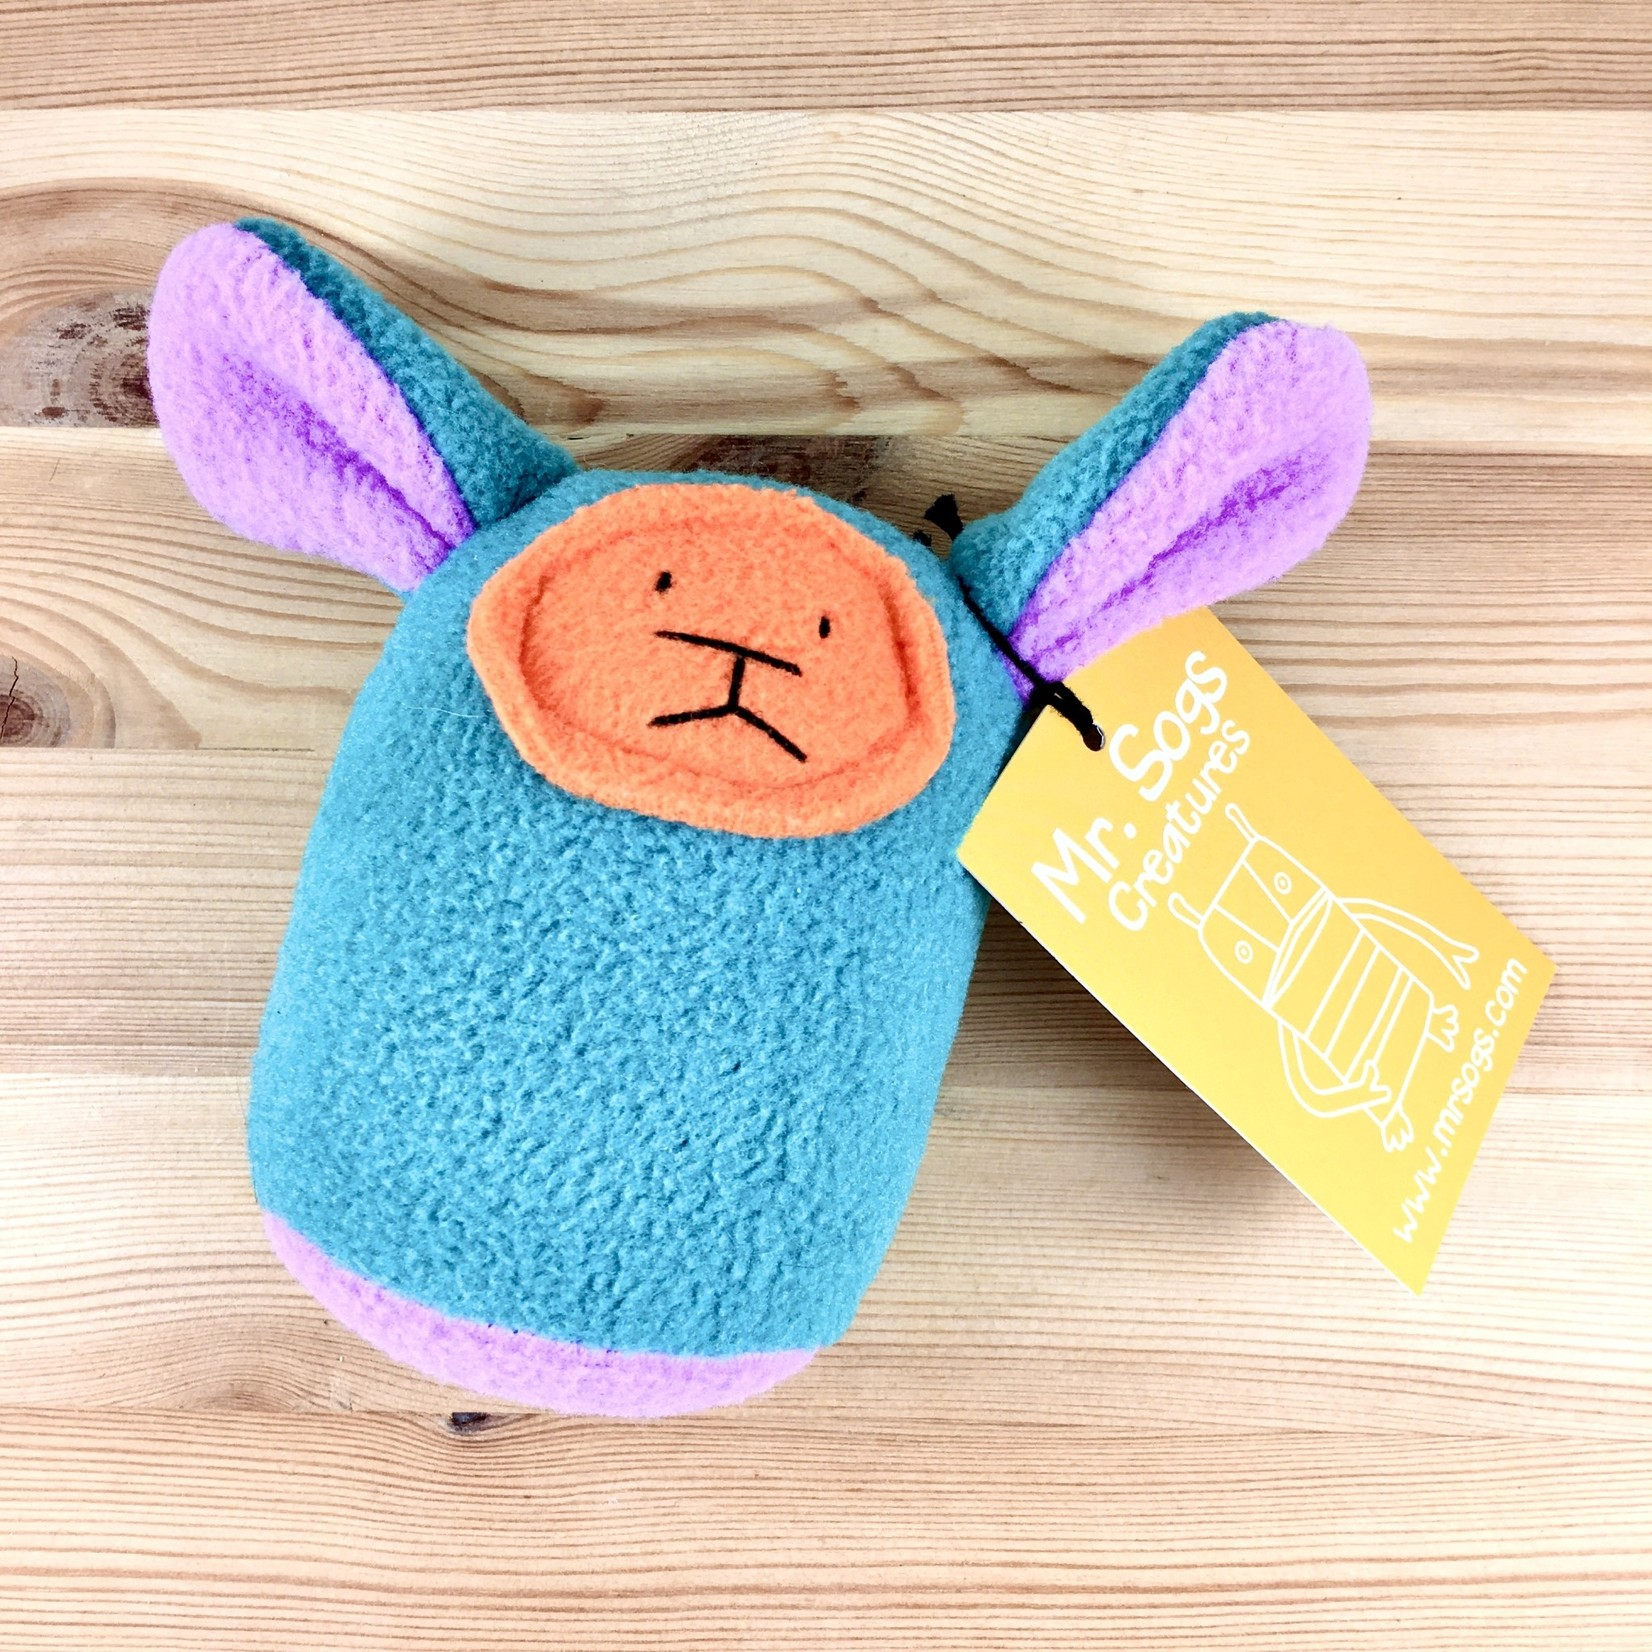 Mr. Sogs Creatures Plush Baby Rattle Creature